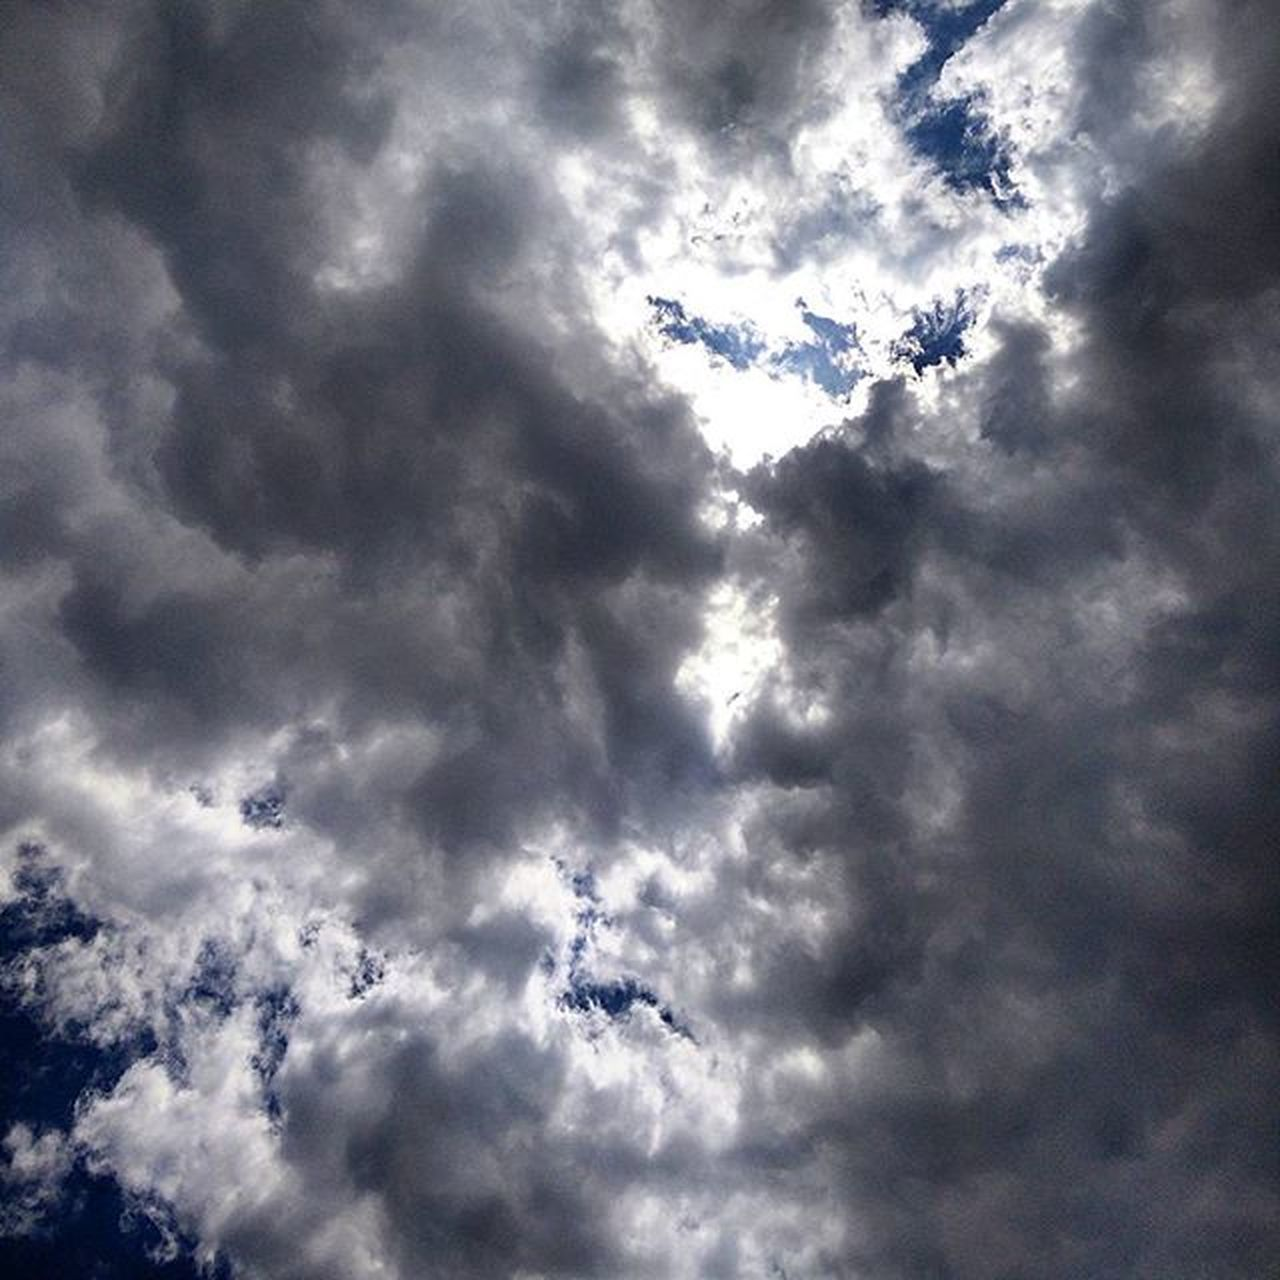 Cloudscape Theeyeofgod Cotton Bluesky Landscape_captures Sky Blue Streetphotography Igers Faded Faded_portugal Myfeaturedphotography Mysquarephoto P3top Laliphotography 300posts Happyday Light Shadows Instagramers Instacool Bnw_life Bnw_captures Bnw_magazine Bnw_planet